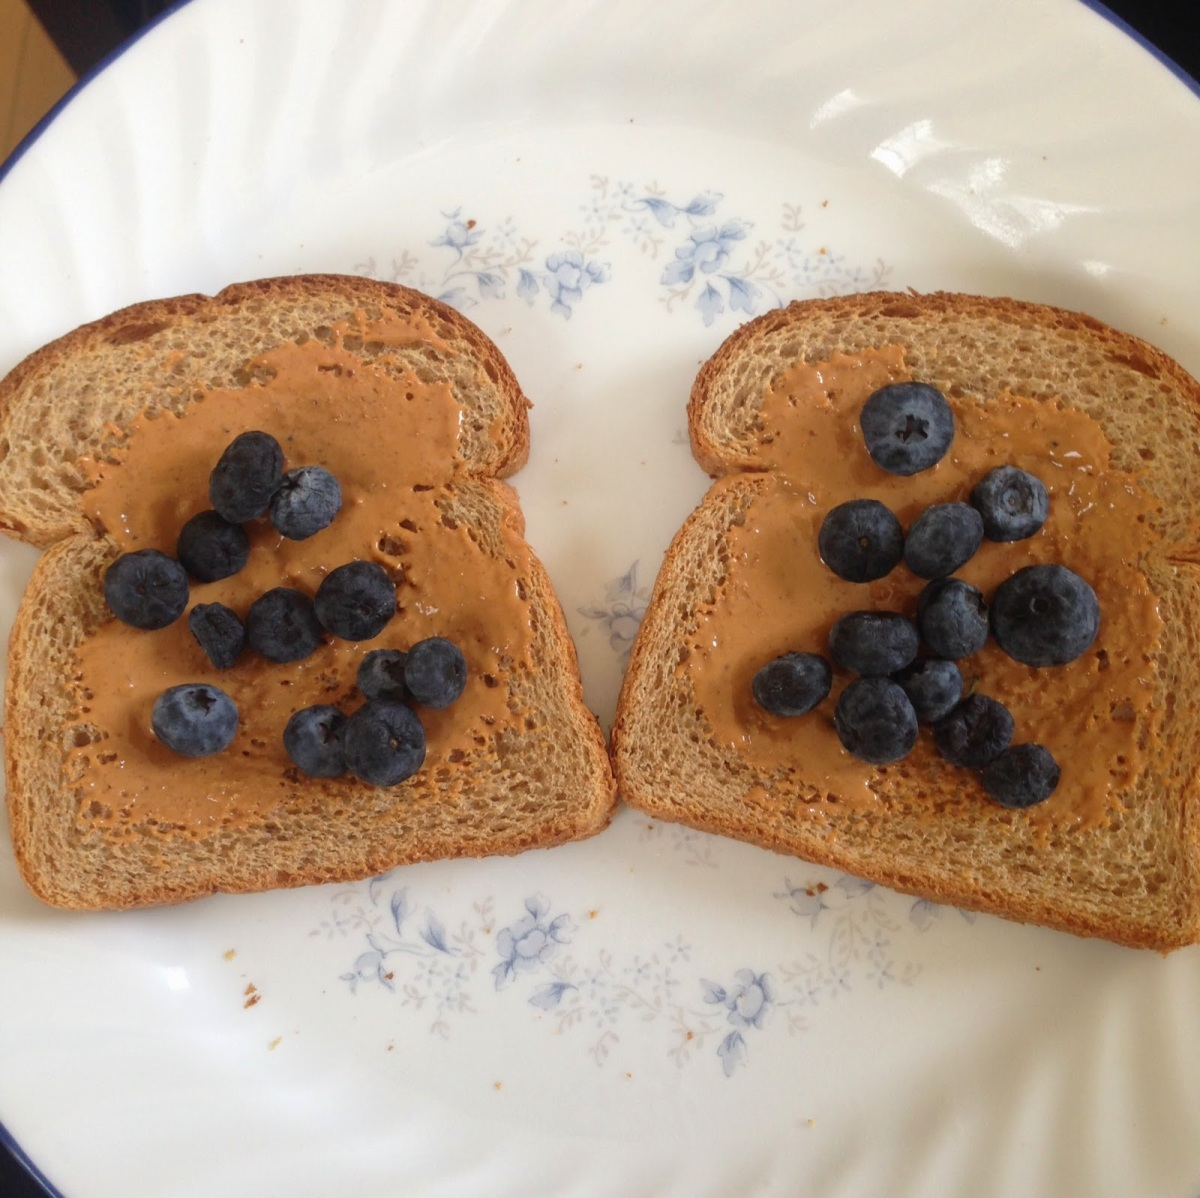 Snack: 2 Slices whole wheat toast with 1/2 tbsp better'n peanut butter on each and blueberries